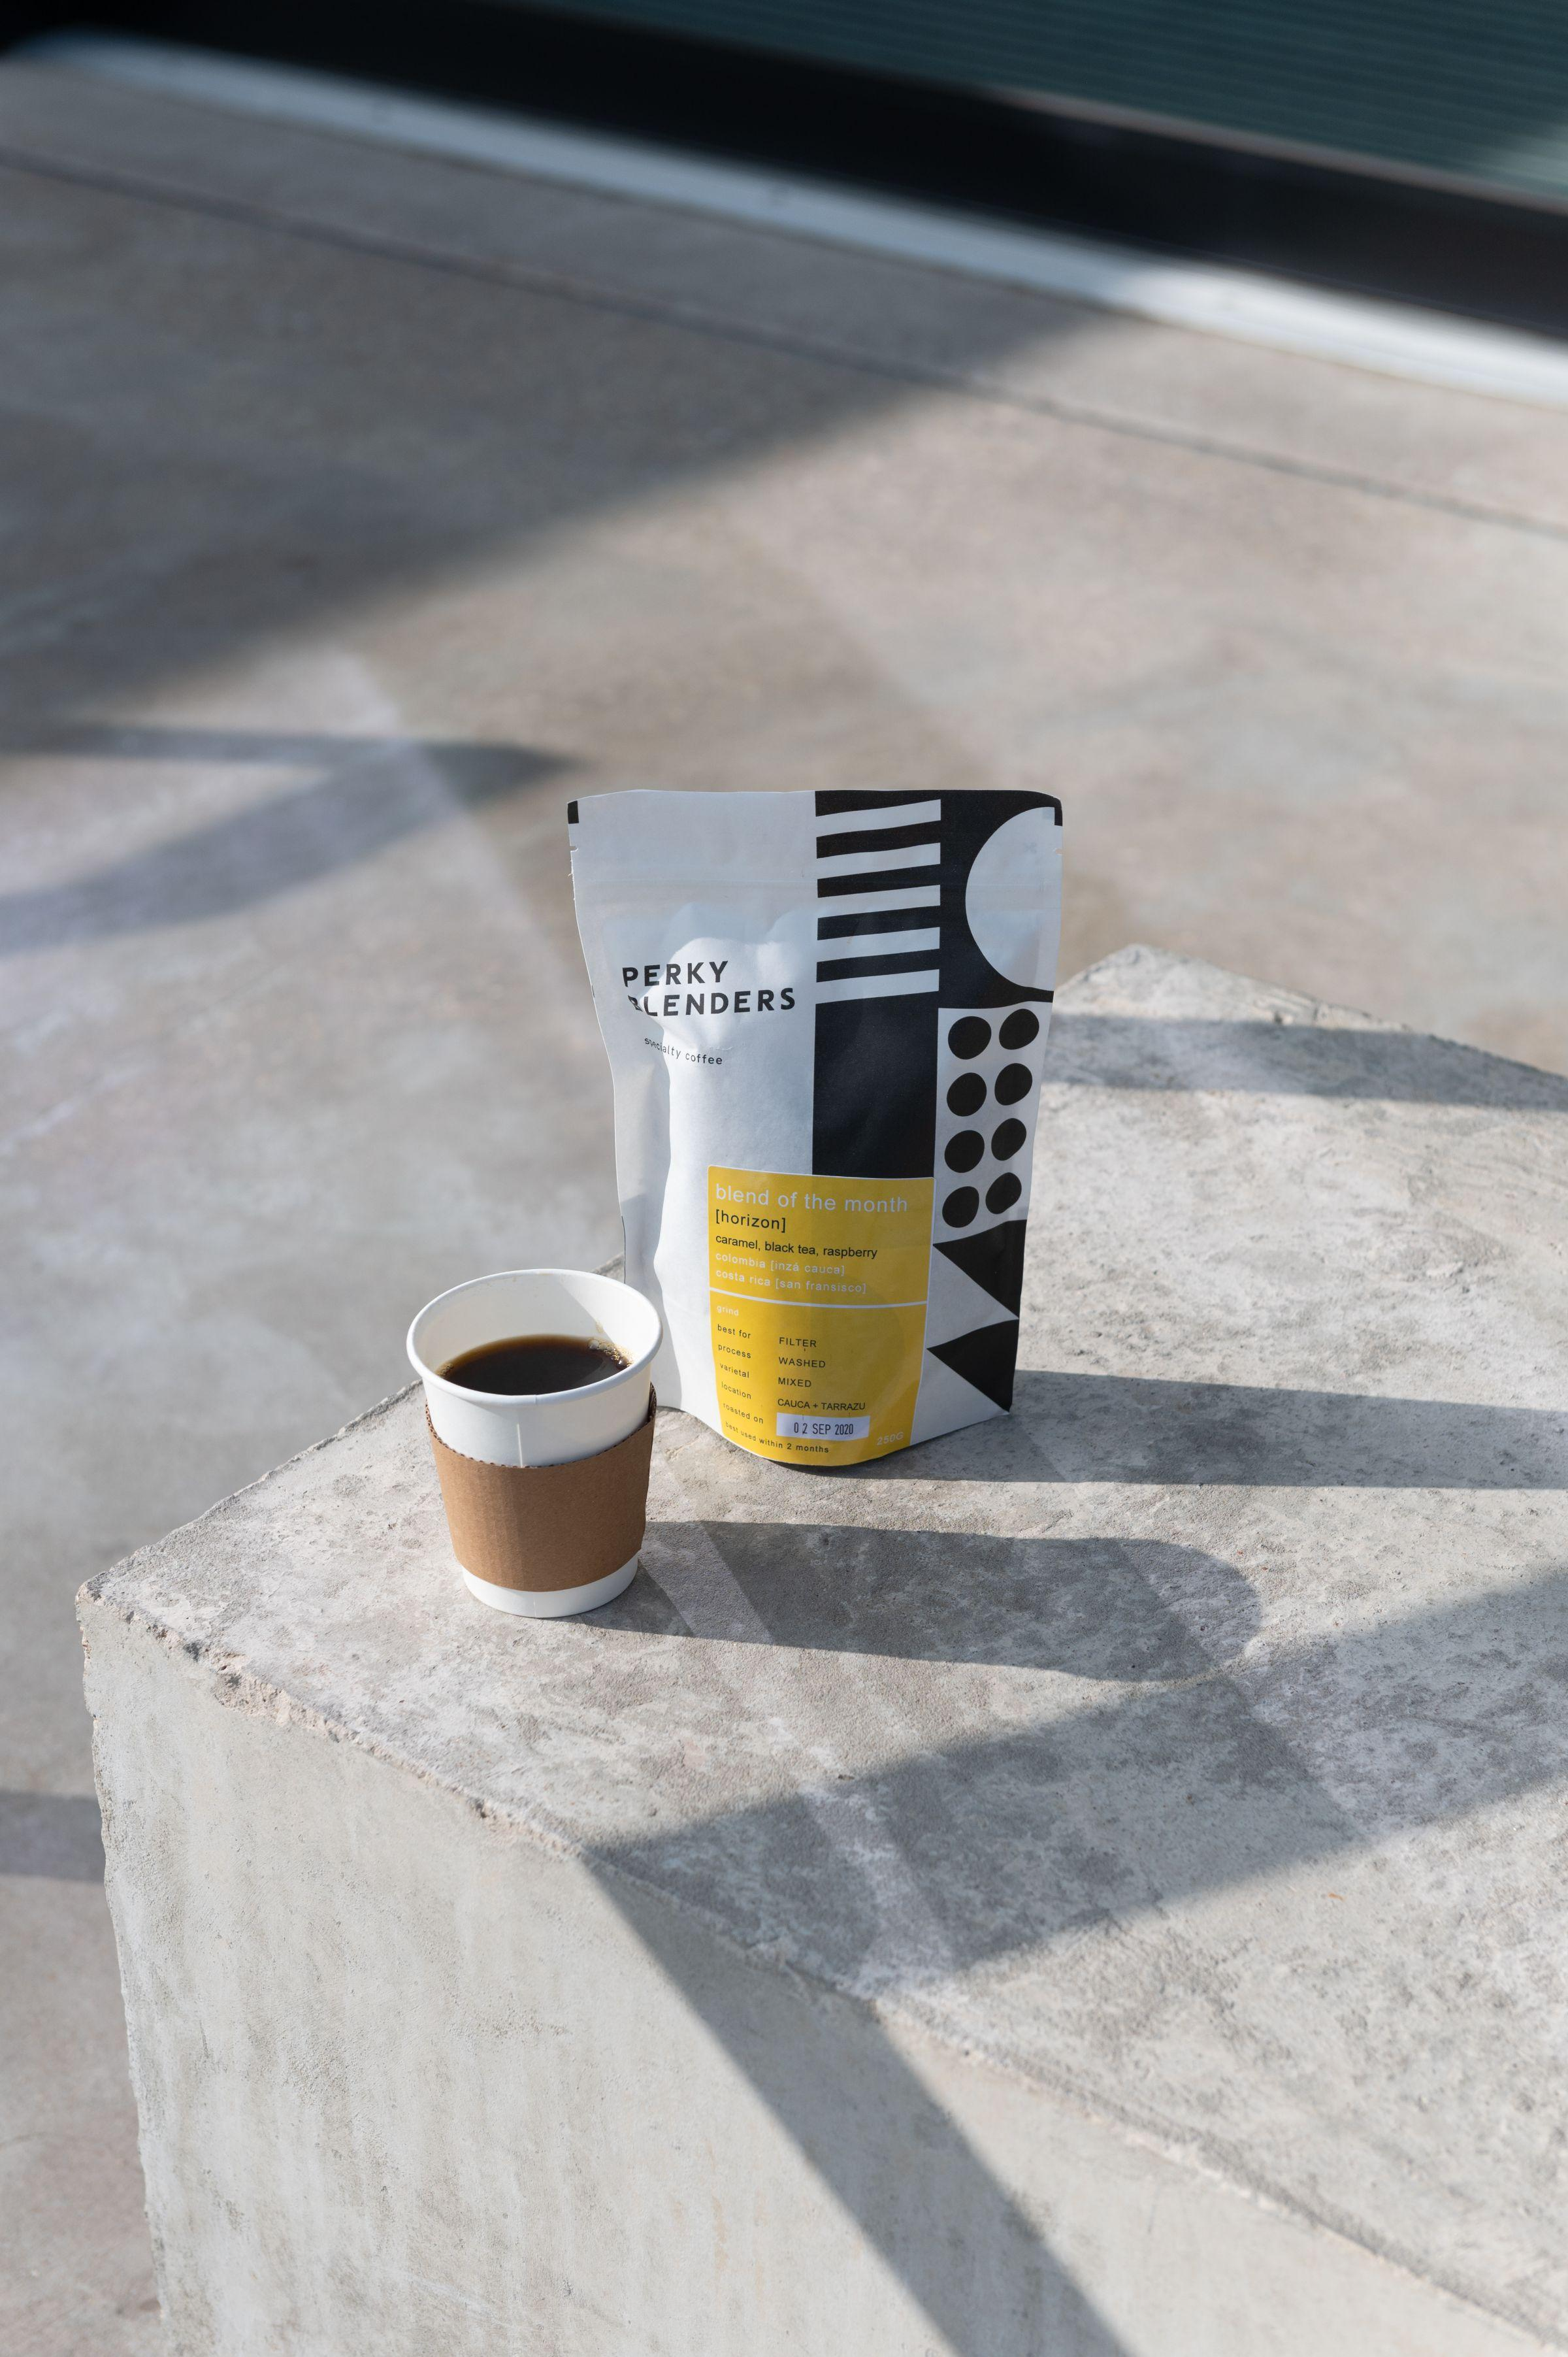 Coffee cup and bag of coffee